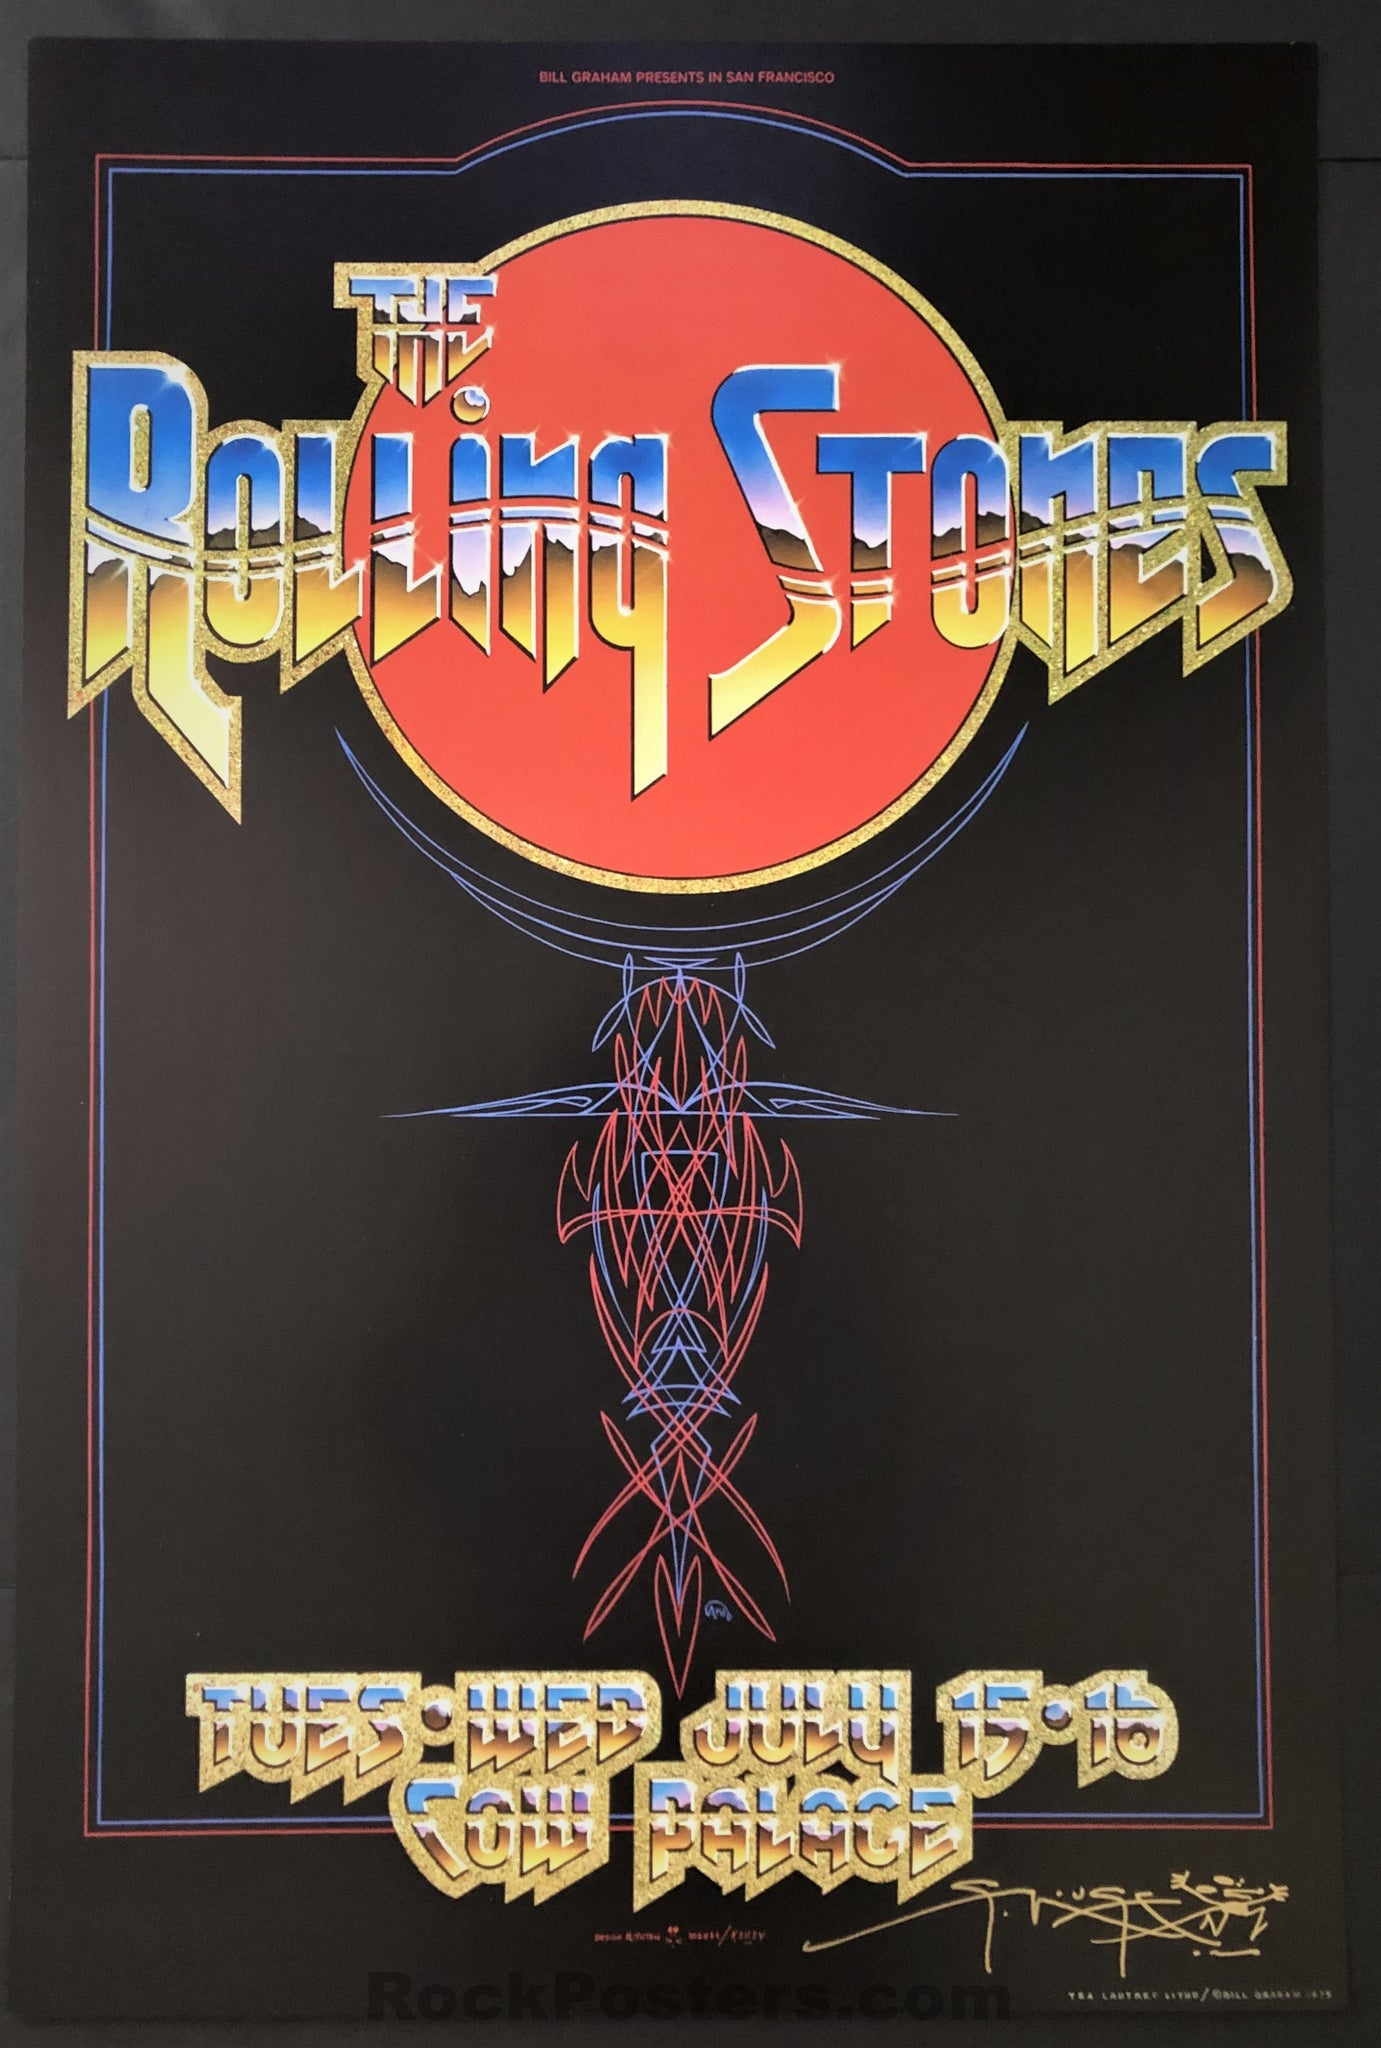 AUCTION - AOR-4.41 - Rolling Stones - 1975 Poster - Stanley Mouse Signed - San Francisco - Mint